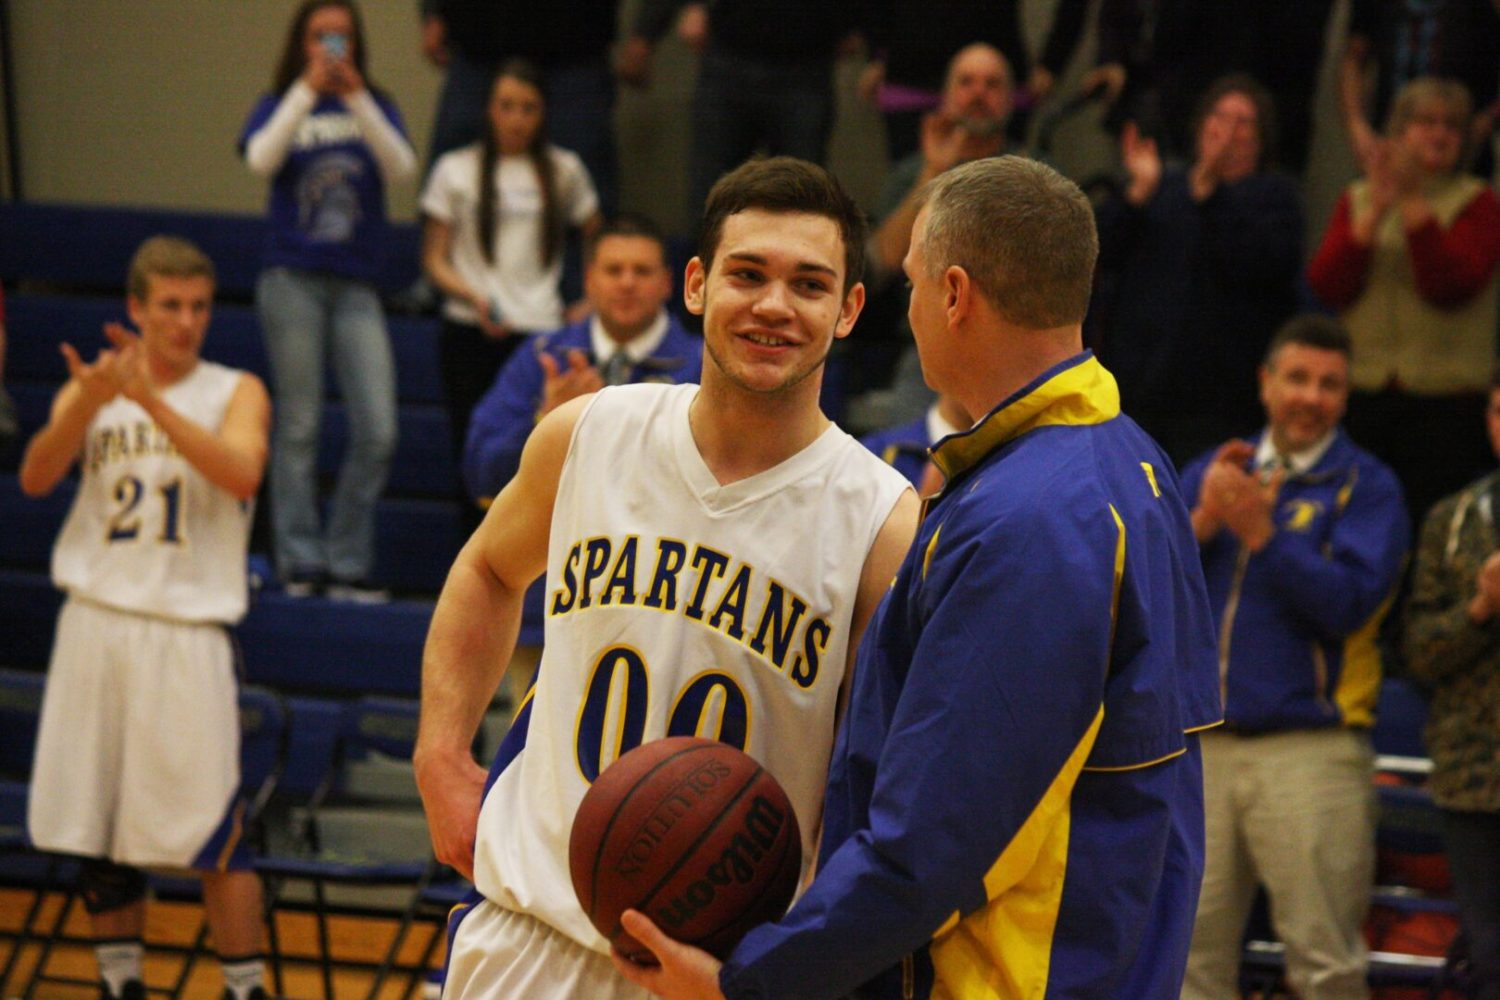 Kody Ambrose reaches 1,000th career point in Mason County Central win over North Muskegon